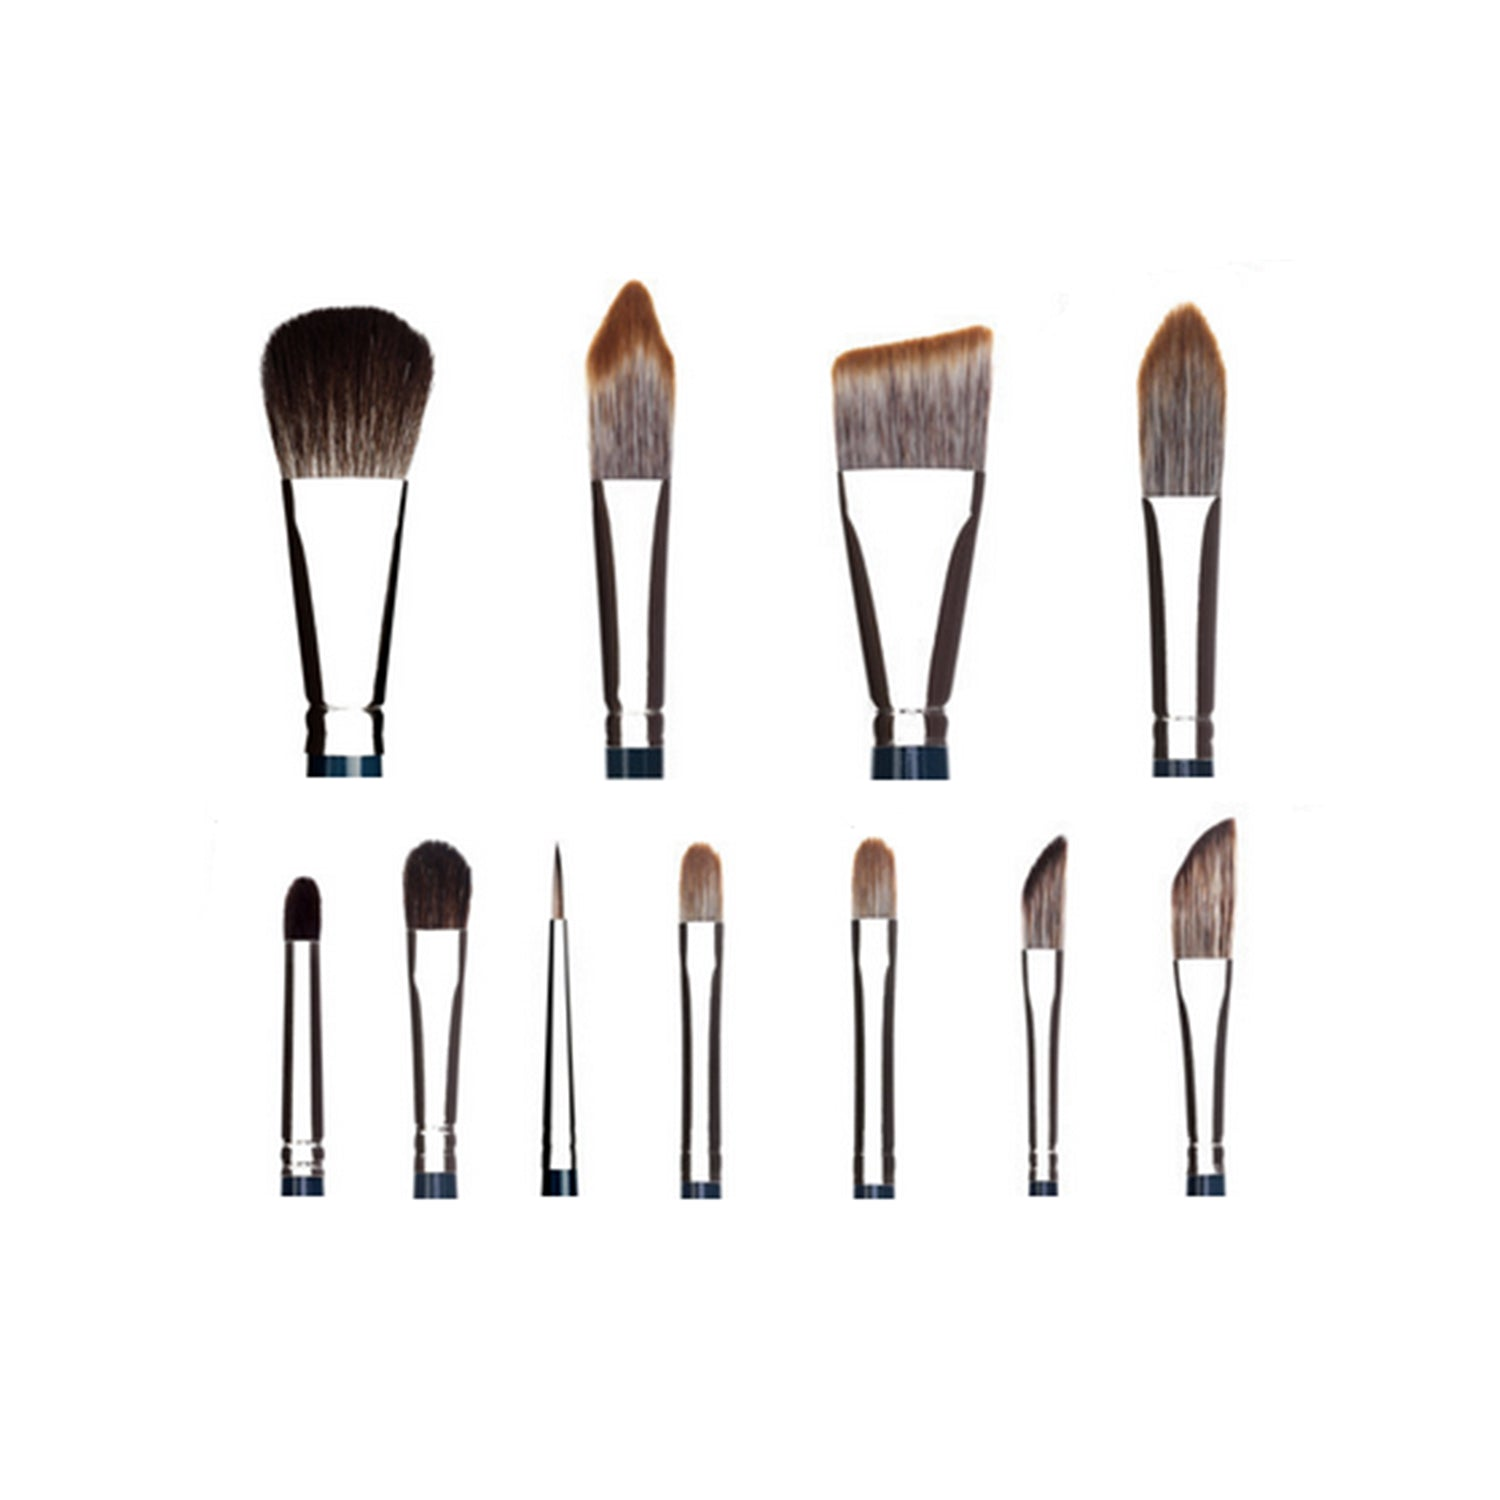 London Brush Company Vegan NouVeau Brushes